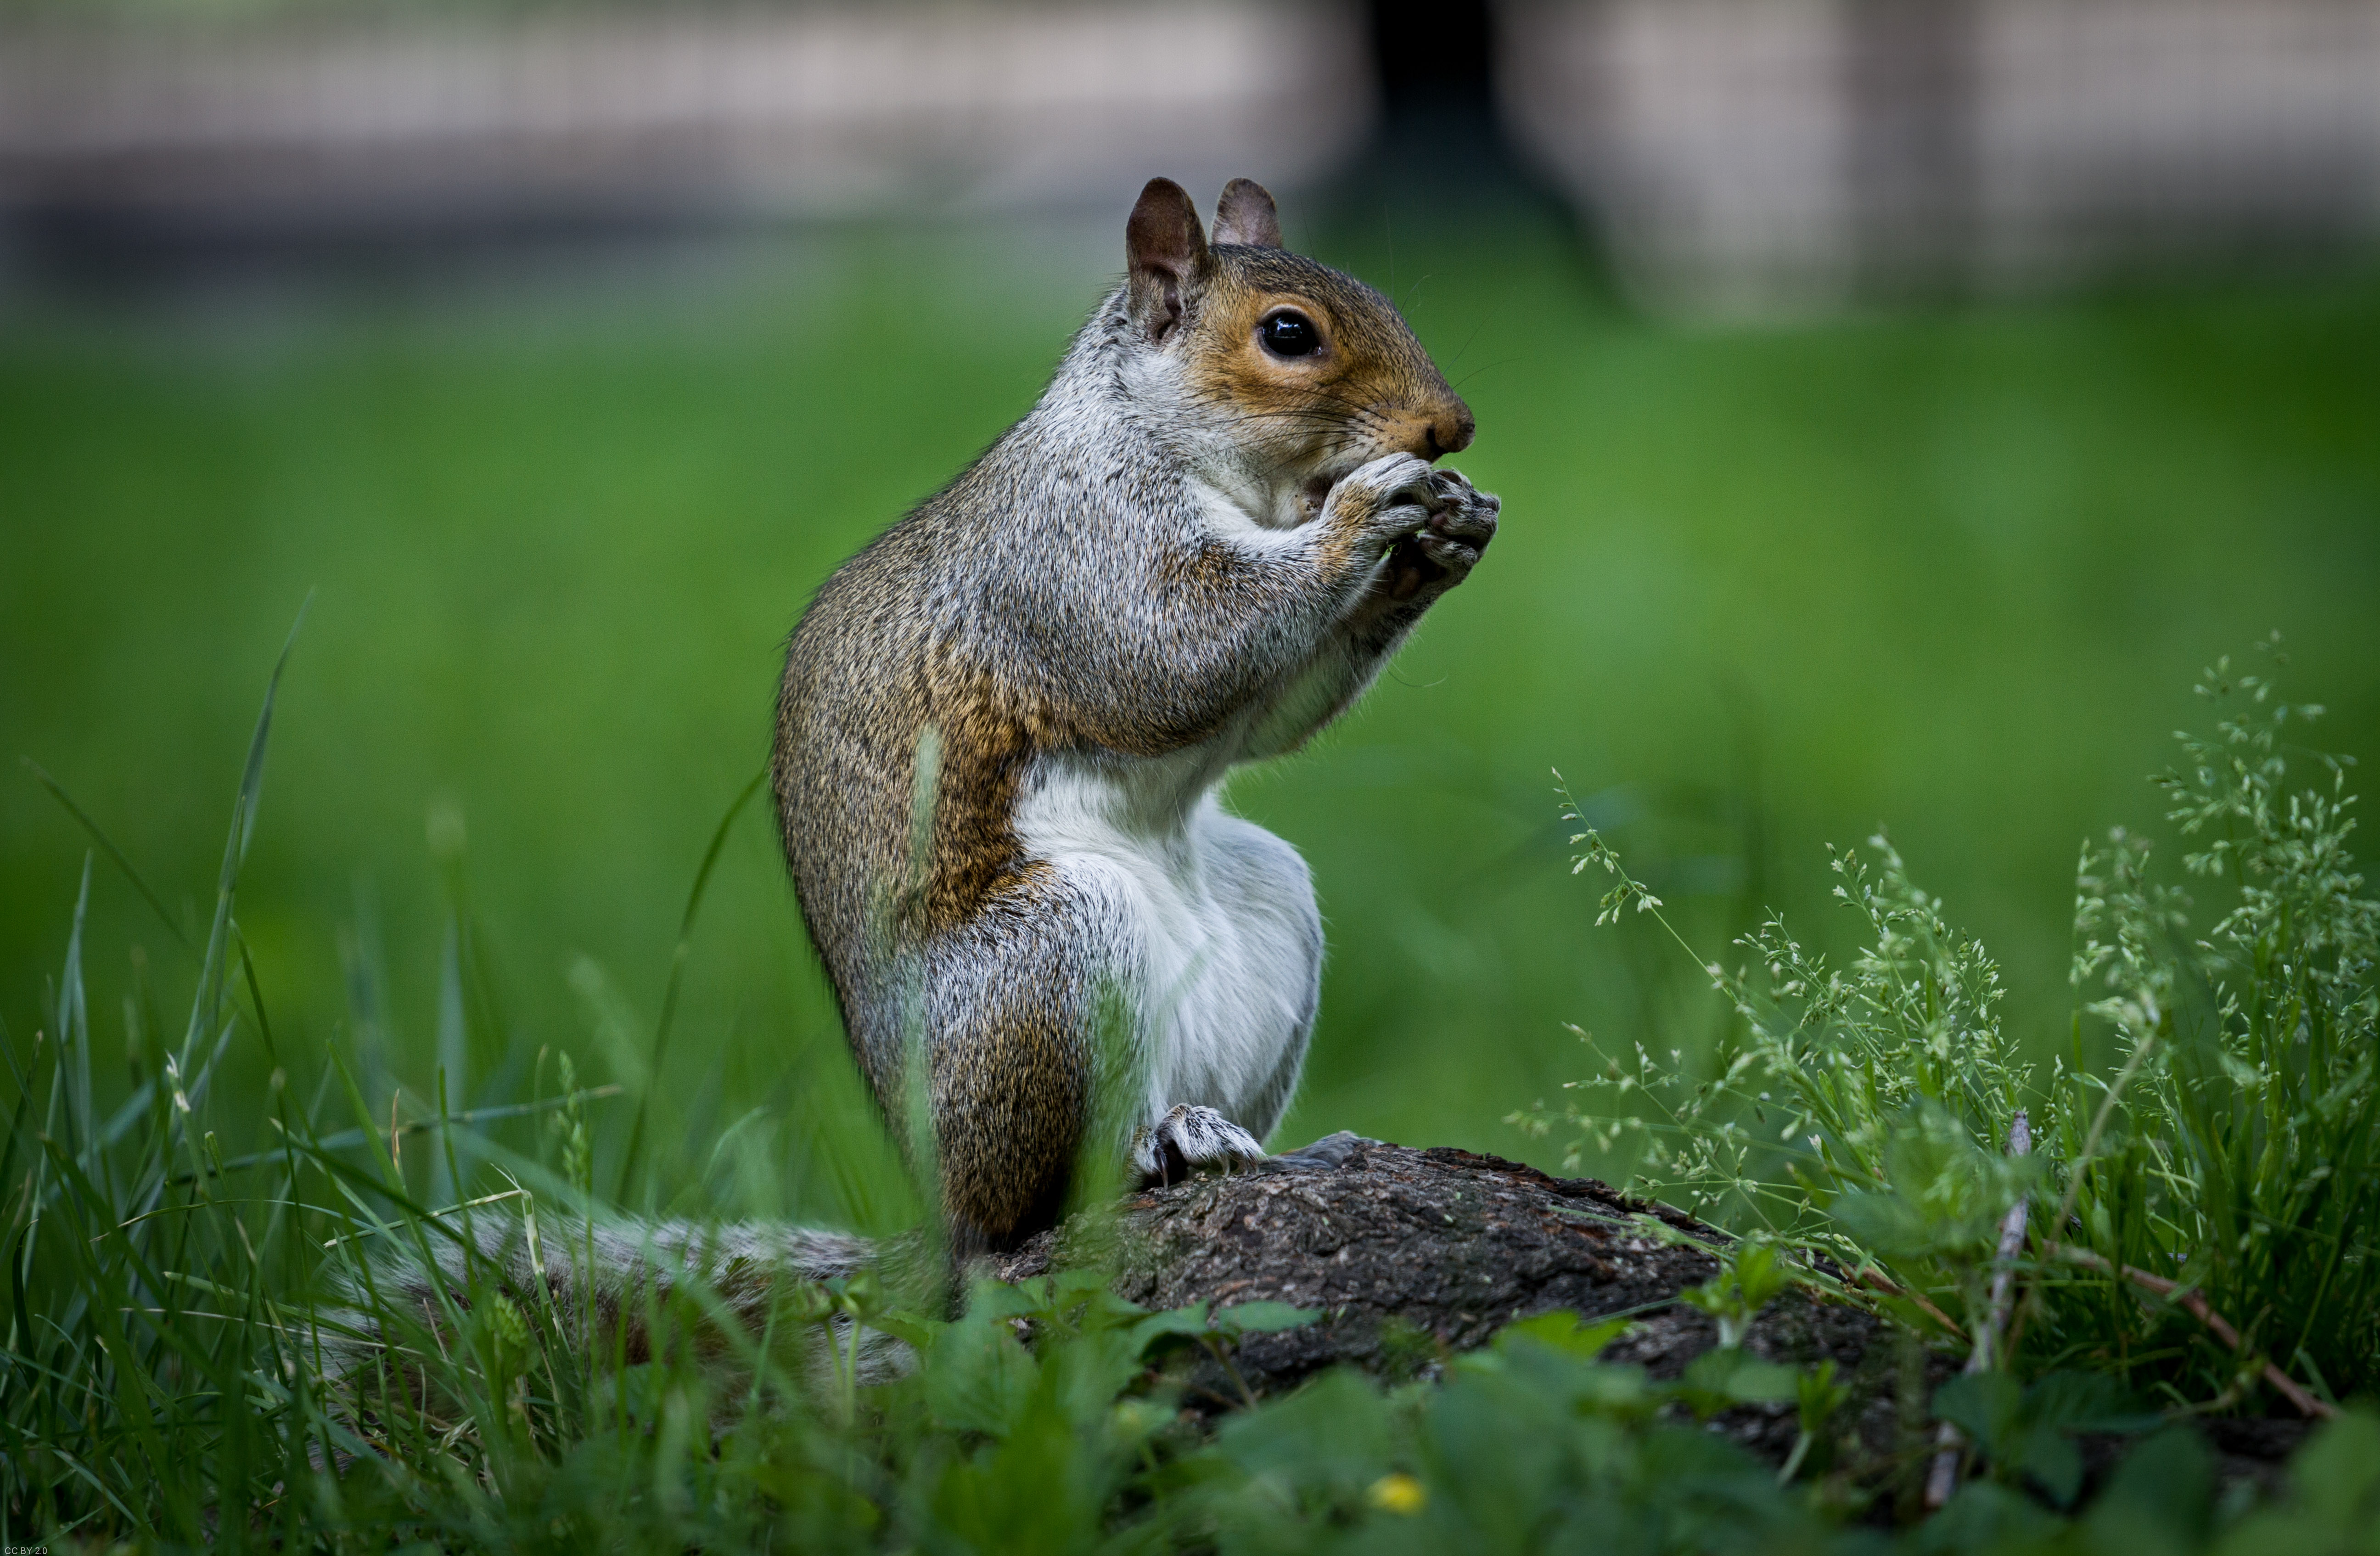 105150 download wallpaper Animals, Rodent, Squirrel, Beast, Nice, Sweetheart, Grass screensavers and pictures for free